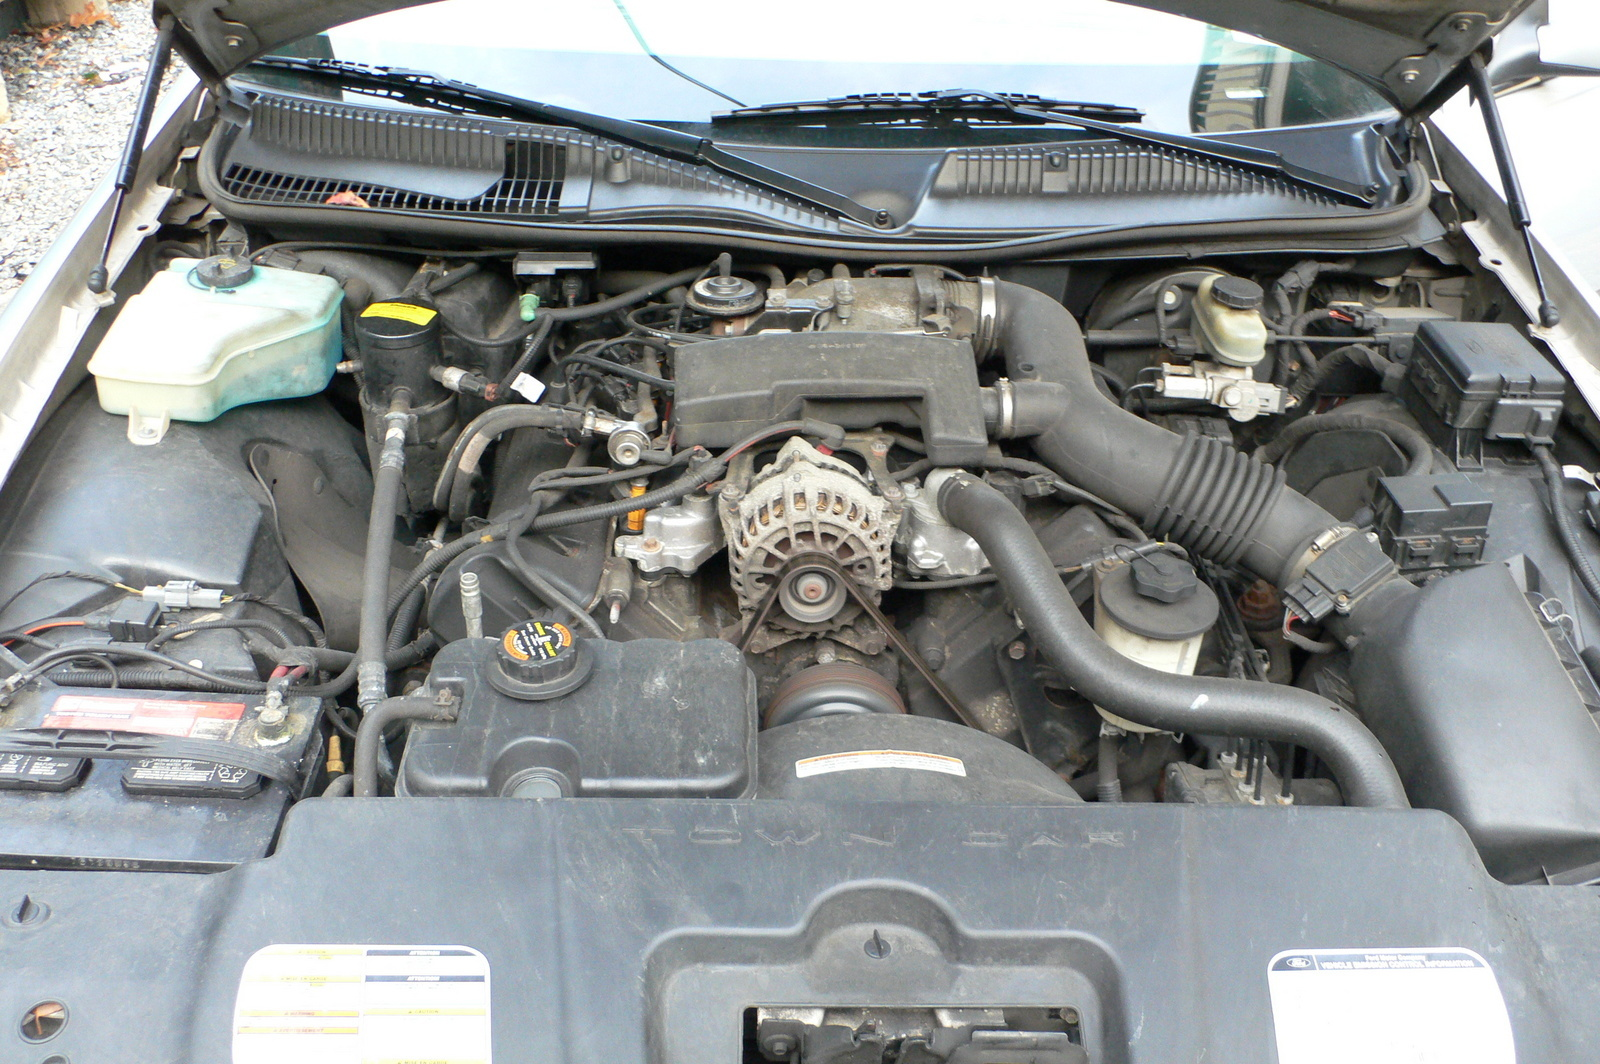 hight resolution of 06 lincoln town car engine diagram wiring diagram files 1999 lincoln town car under hood fuse box diagram lincoln town car diagram under hood